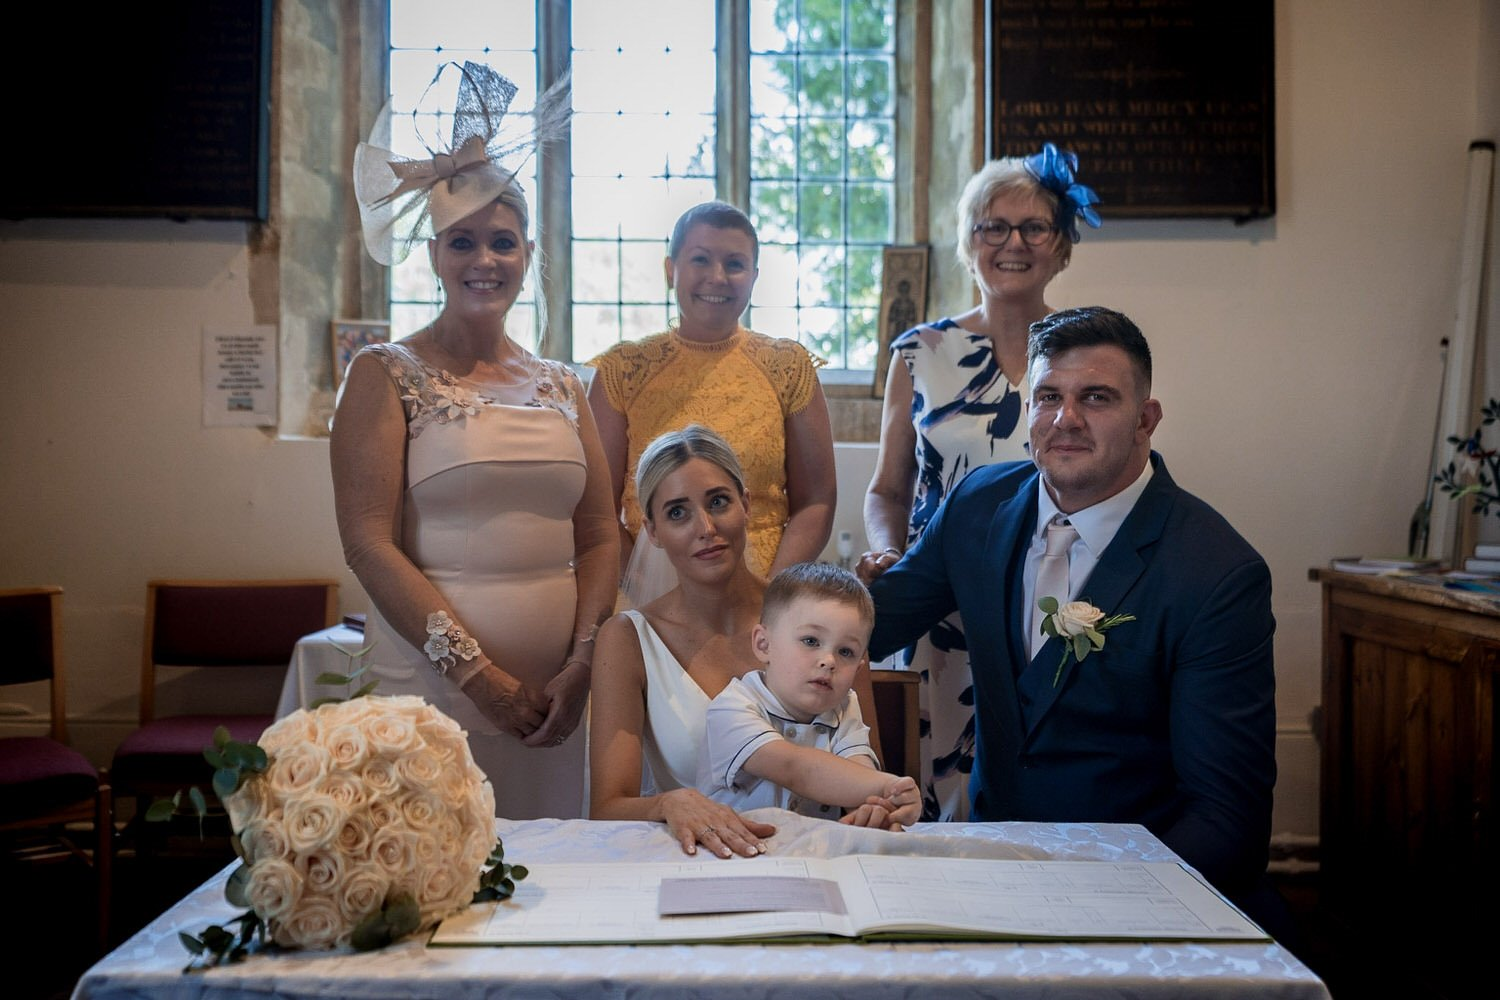 Great Bowden Parish Church Lockwood Weddings Photography group photos in the church at the wedding signing register